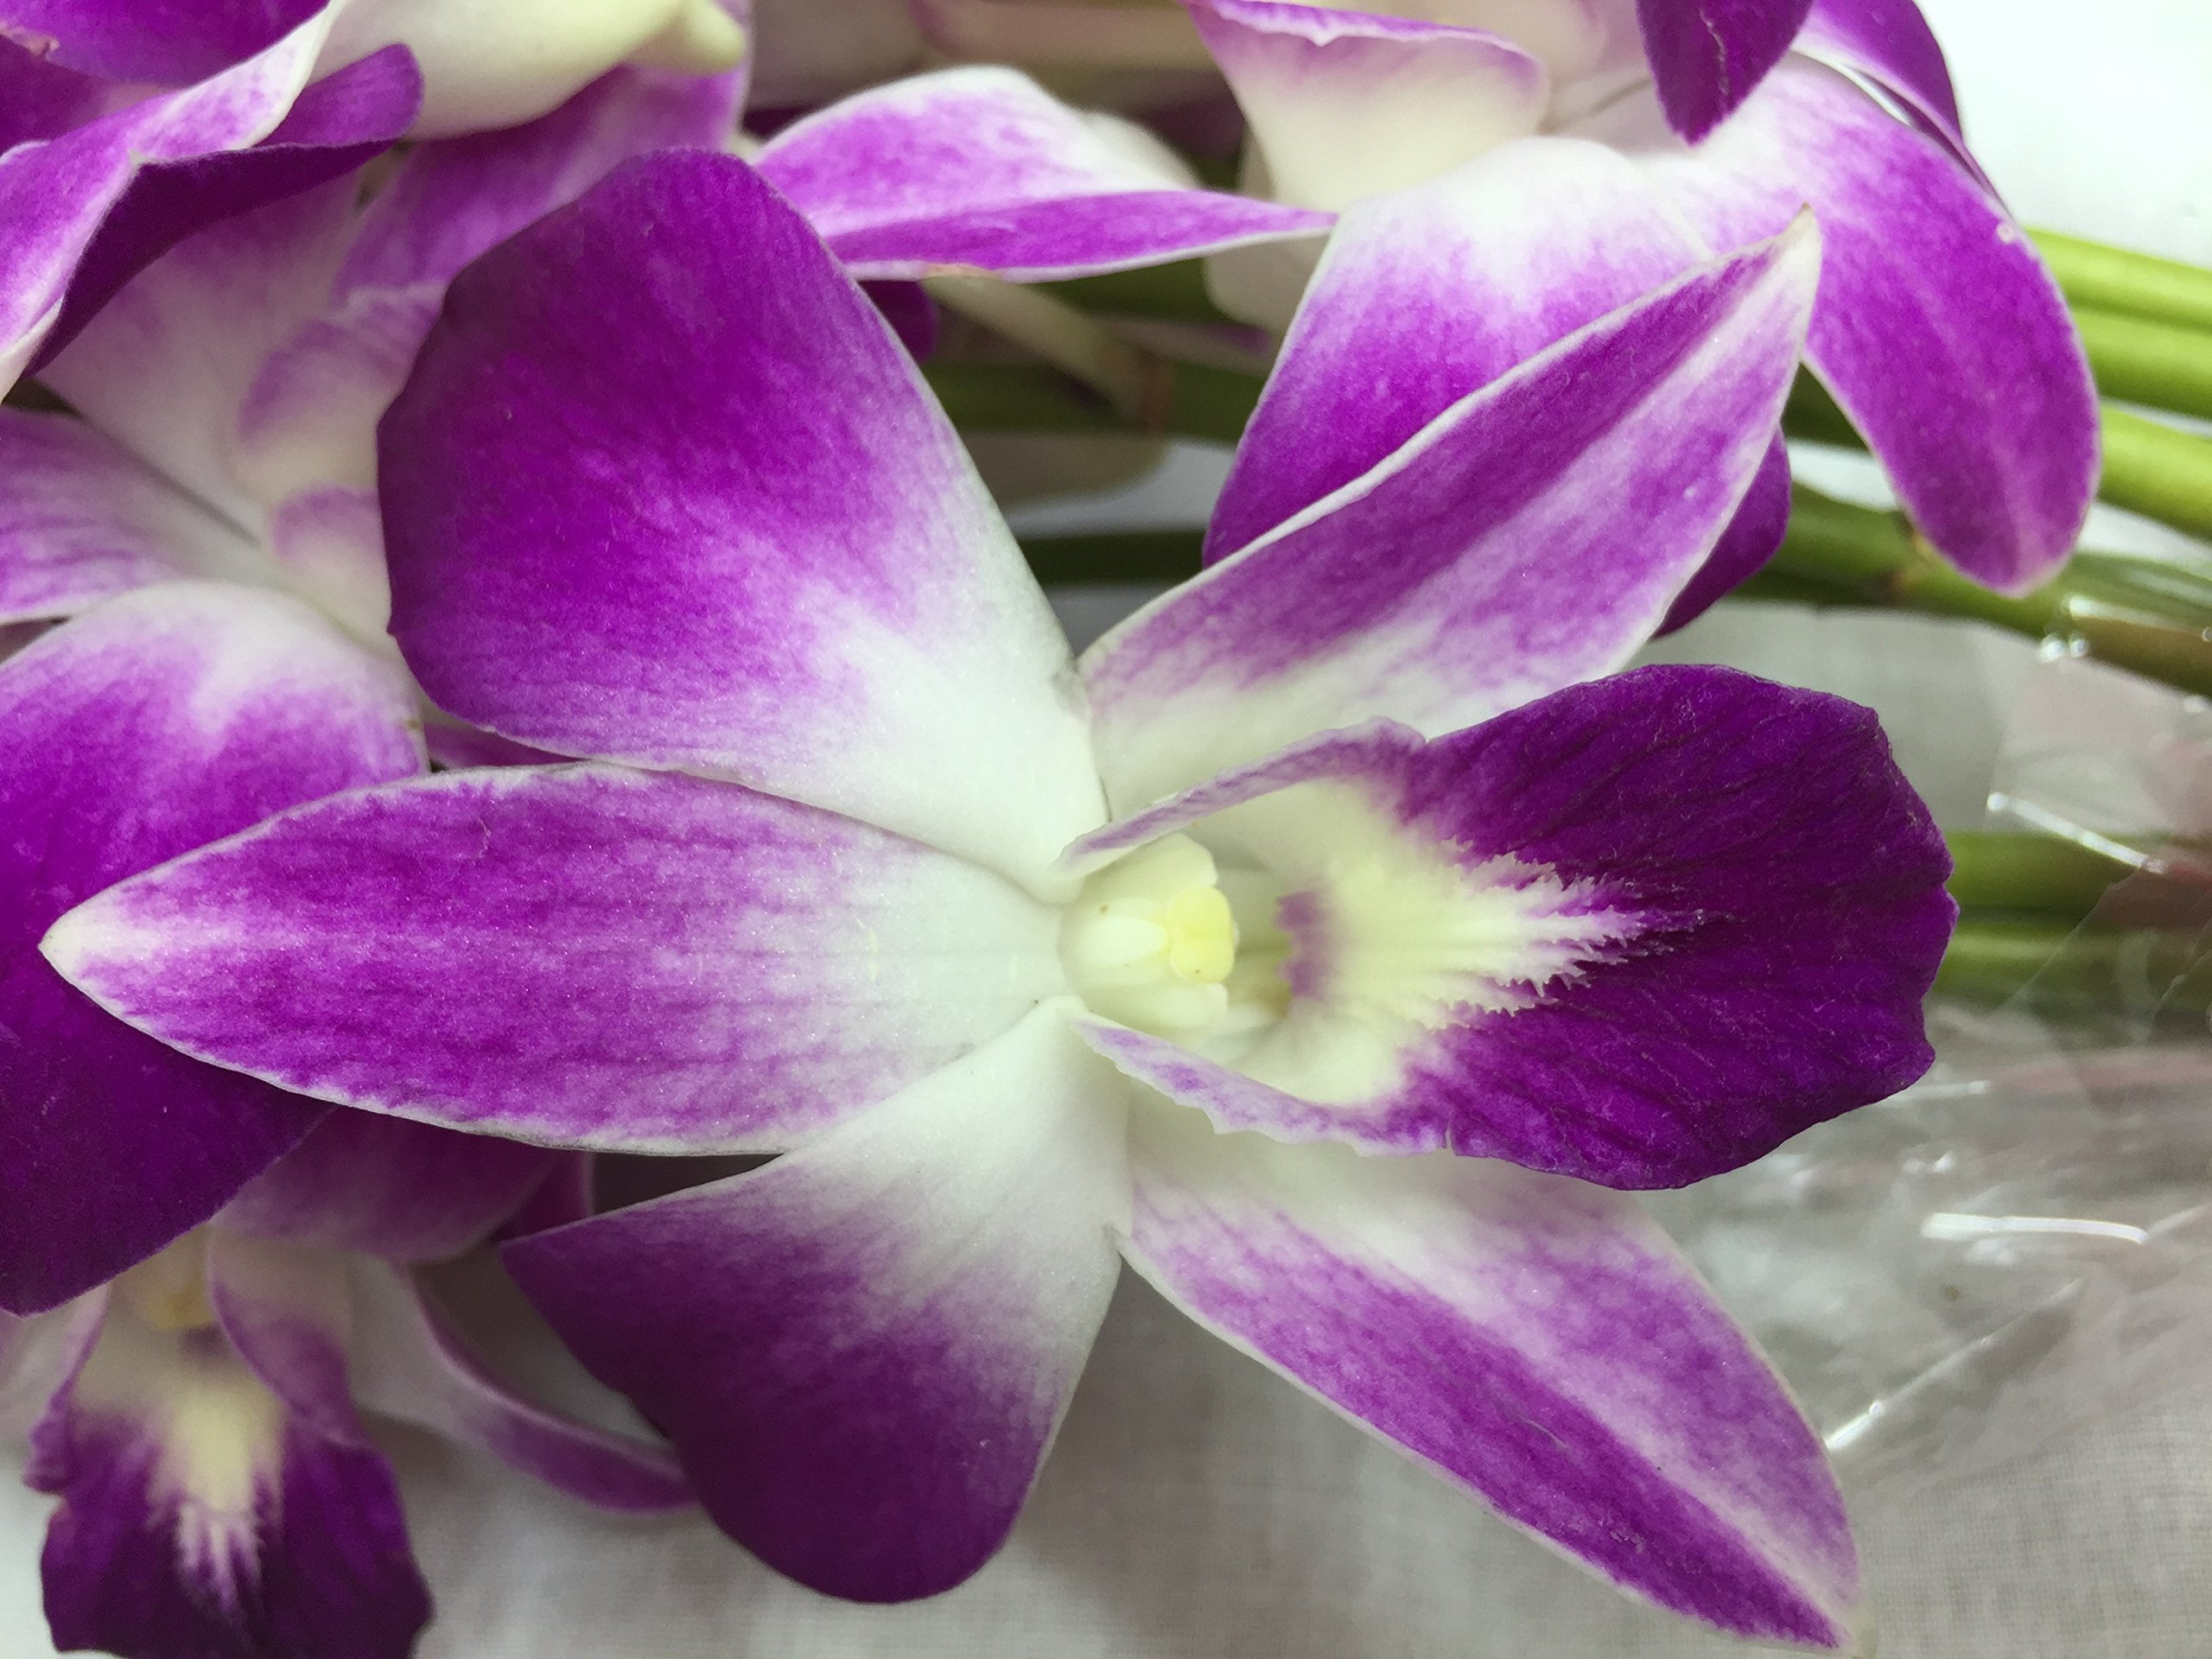 Fresh Cut Flowers -Dendrobium Purple Orchids with Vase by eflowerwholesale (Image #3)